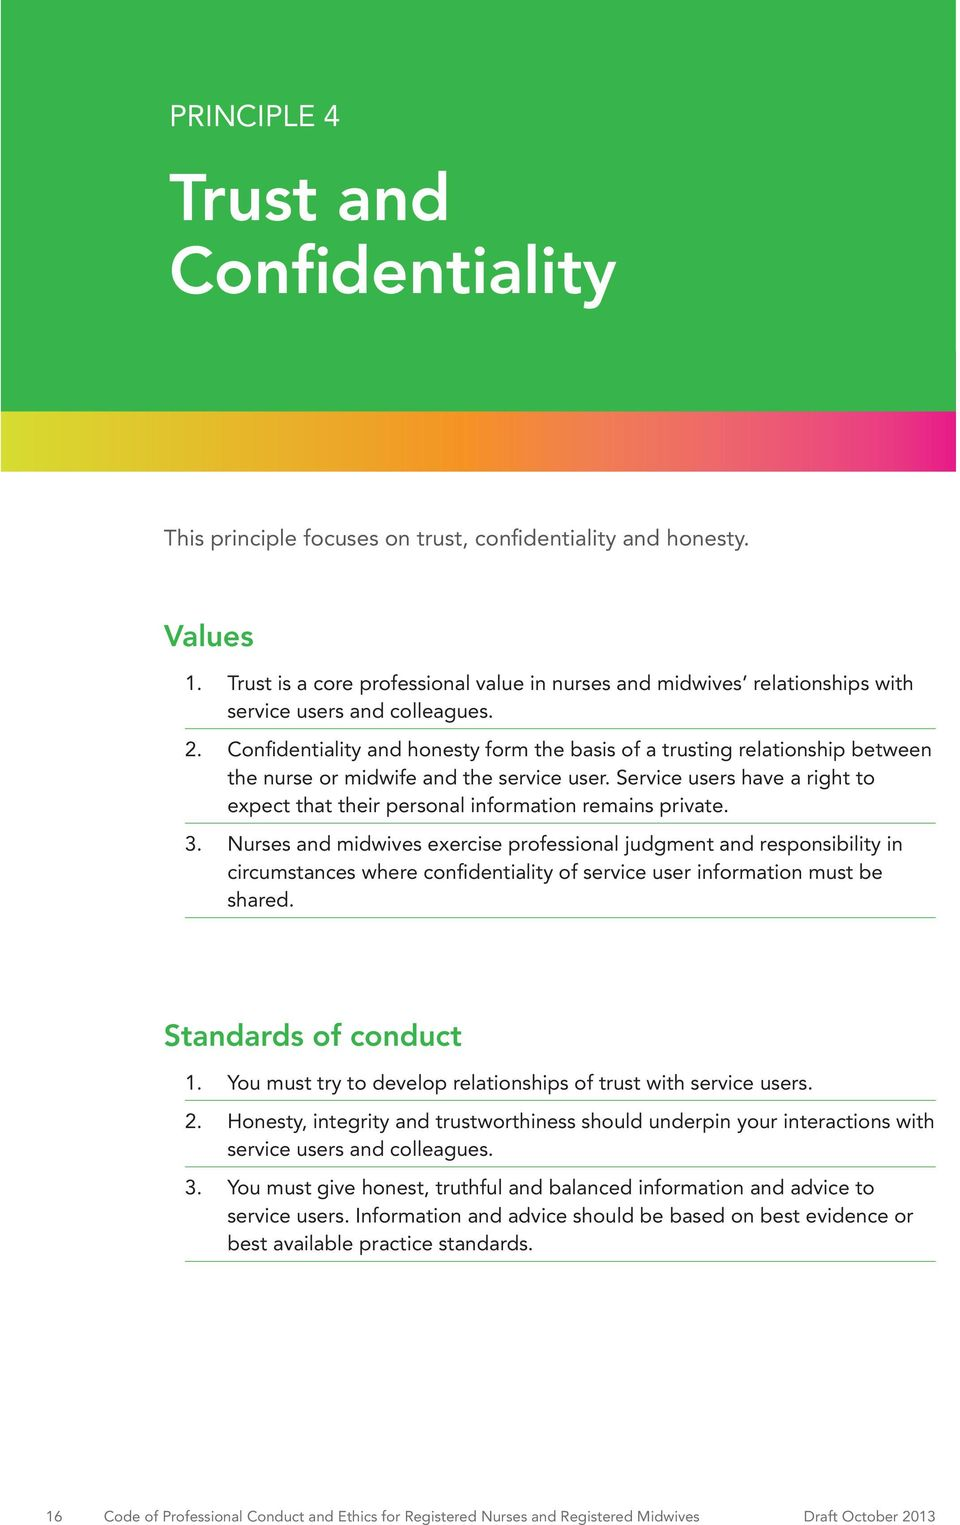 Confidentiality and honesty form the basis of a trusting relationship between the nurse or midwife and the service user.